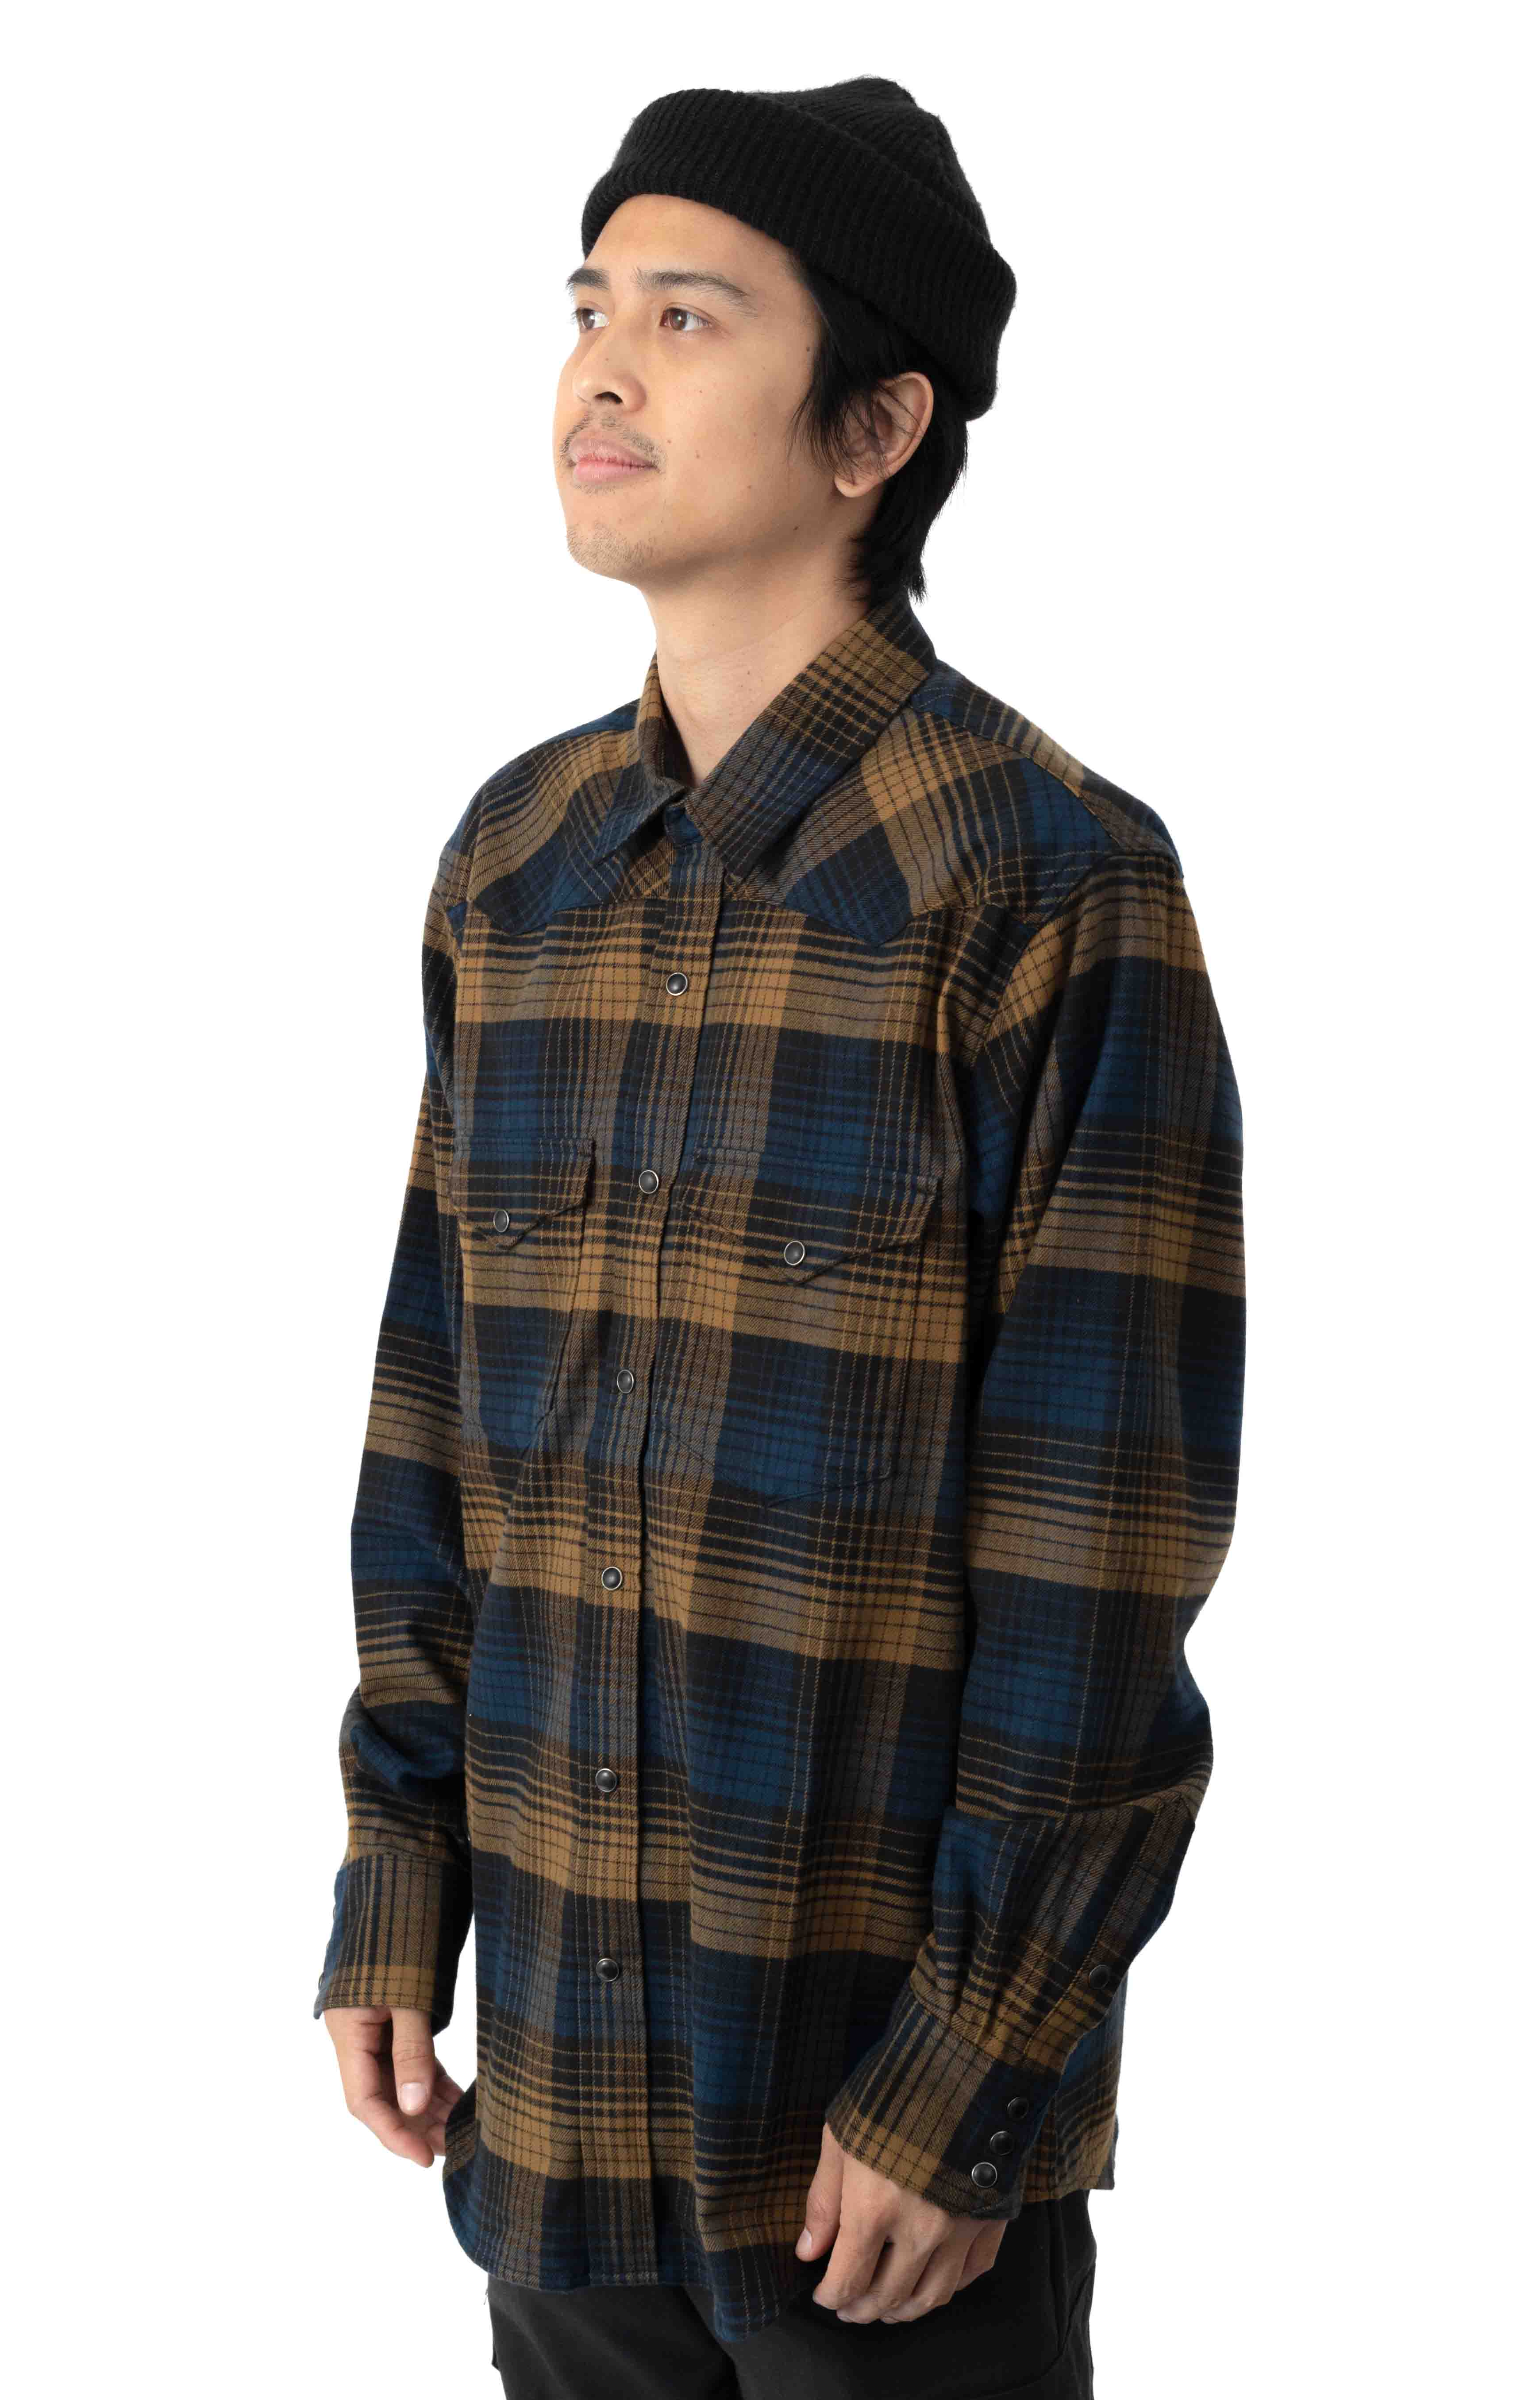 Western Flannel Button-Up Shirt - Plaid  2